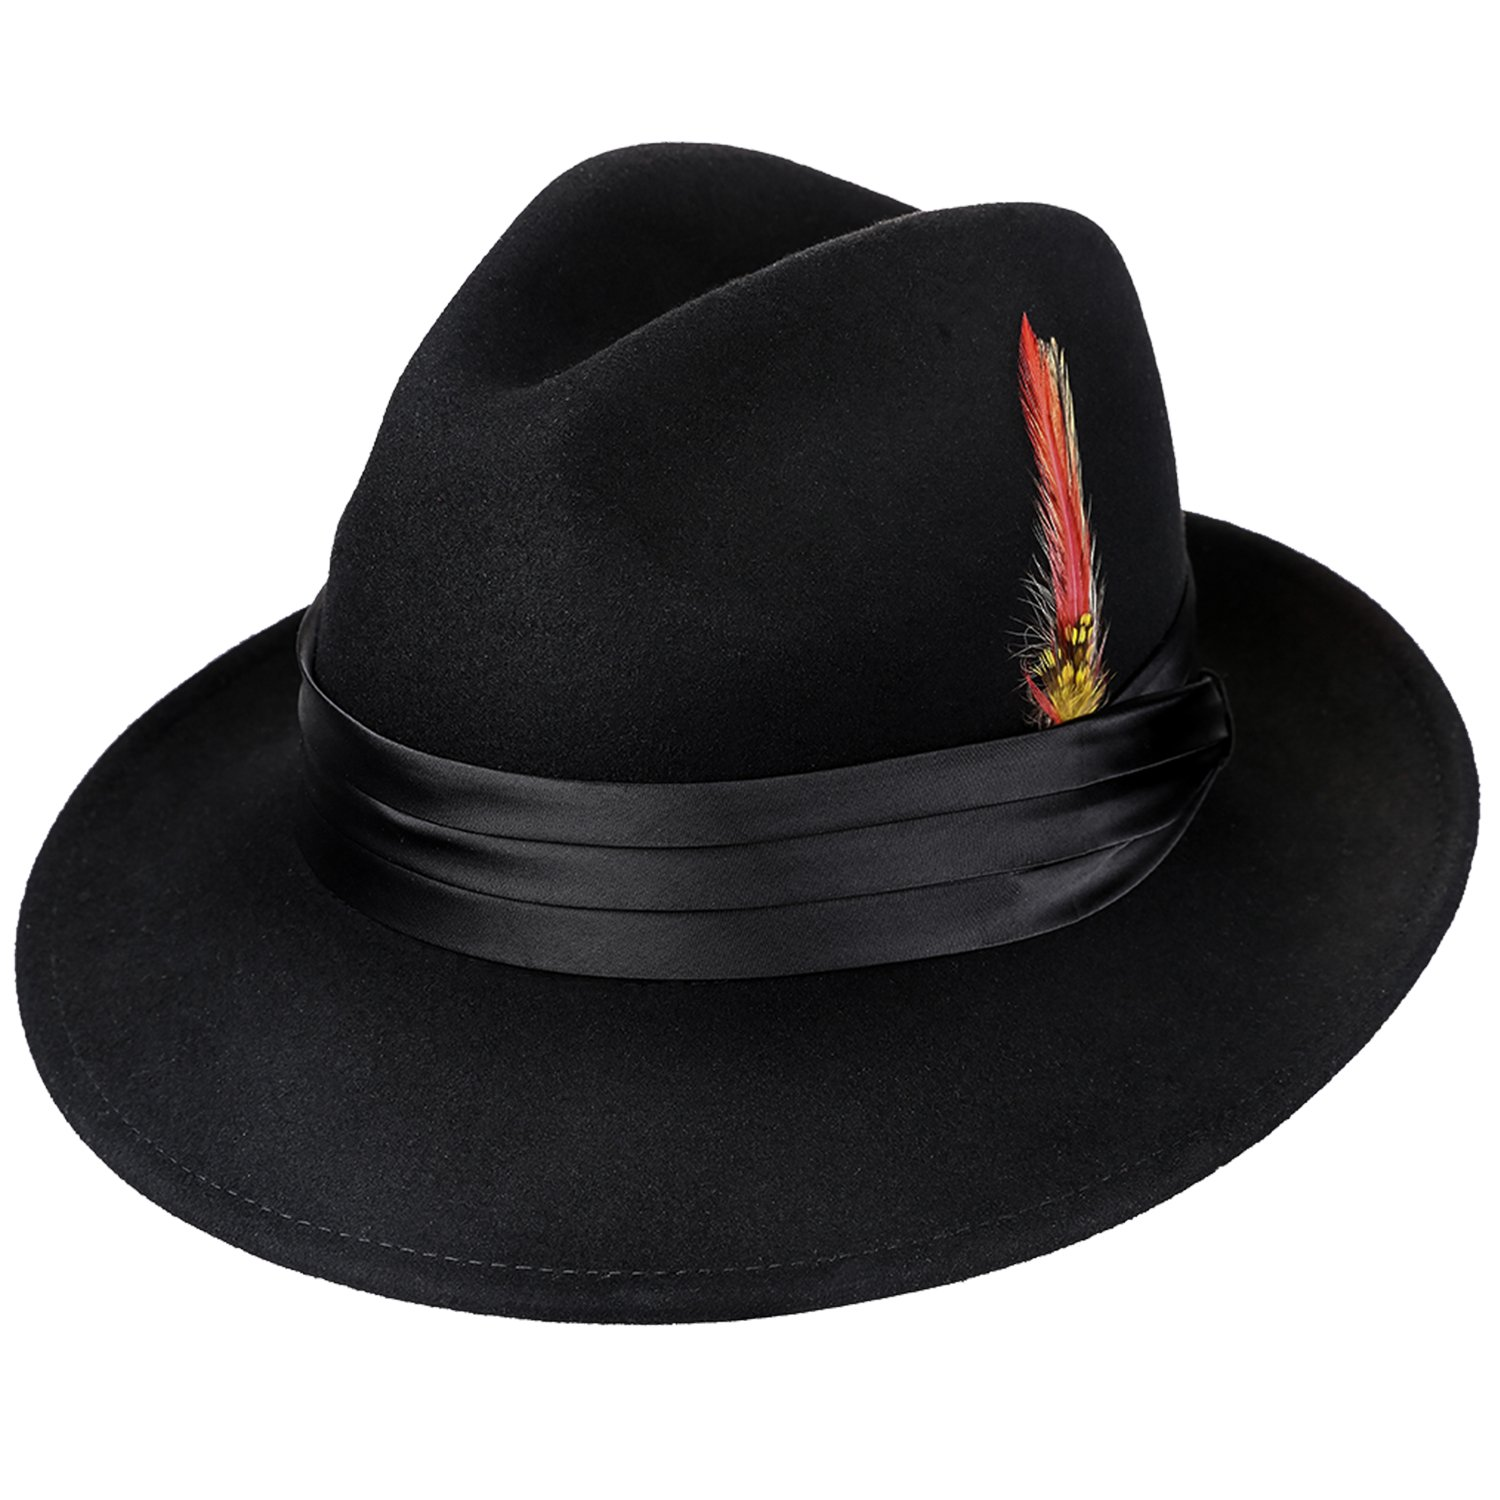 Deevoov Men Fedora Hats with Feather Australia Wool Trilby Hat